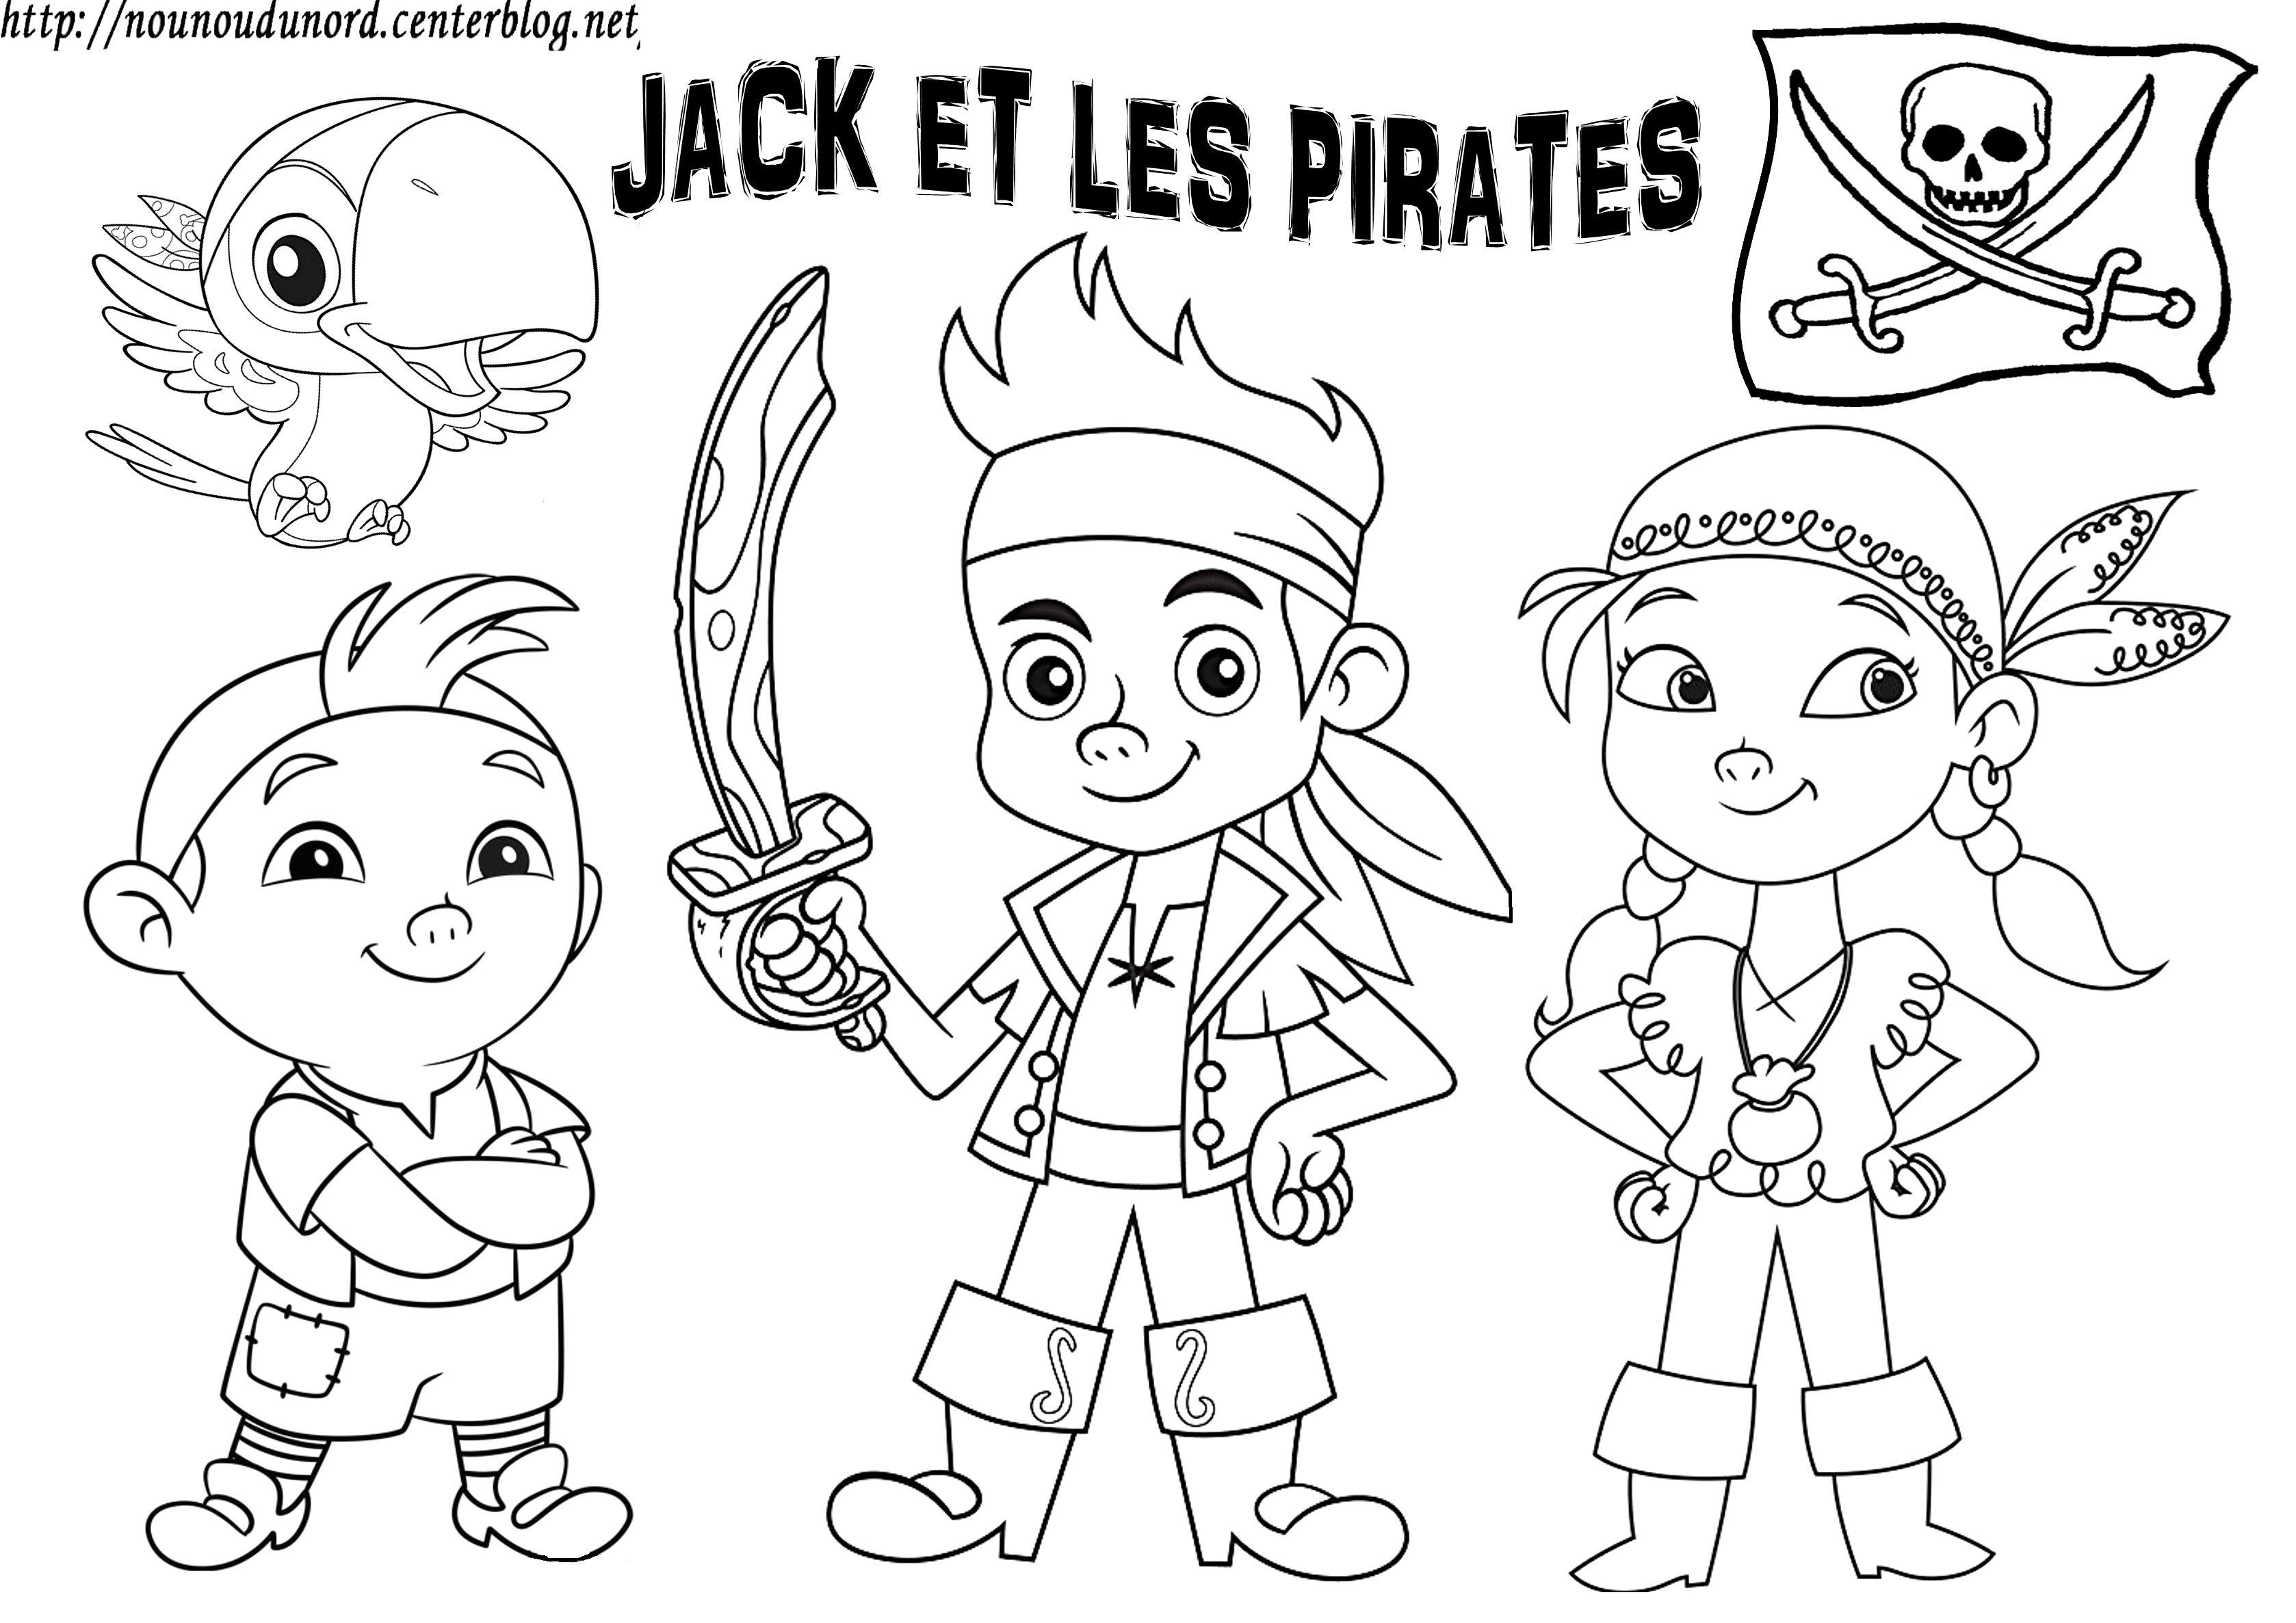 Jake et les pirates coloriage gommettes - Coloriage jack le pirate ...